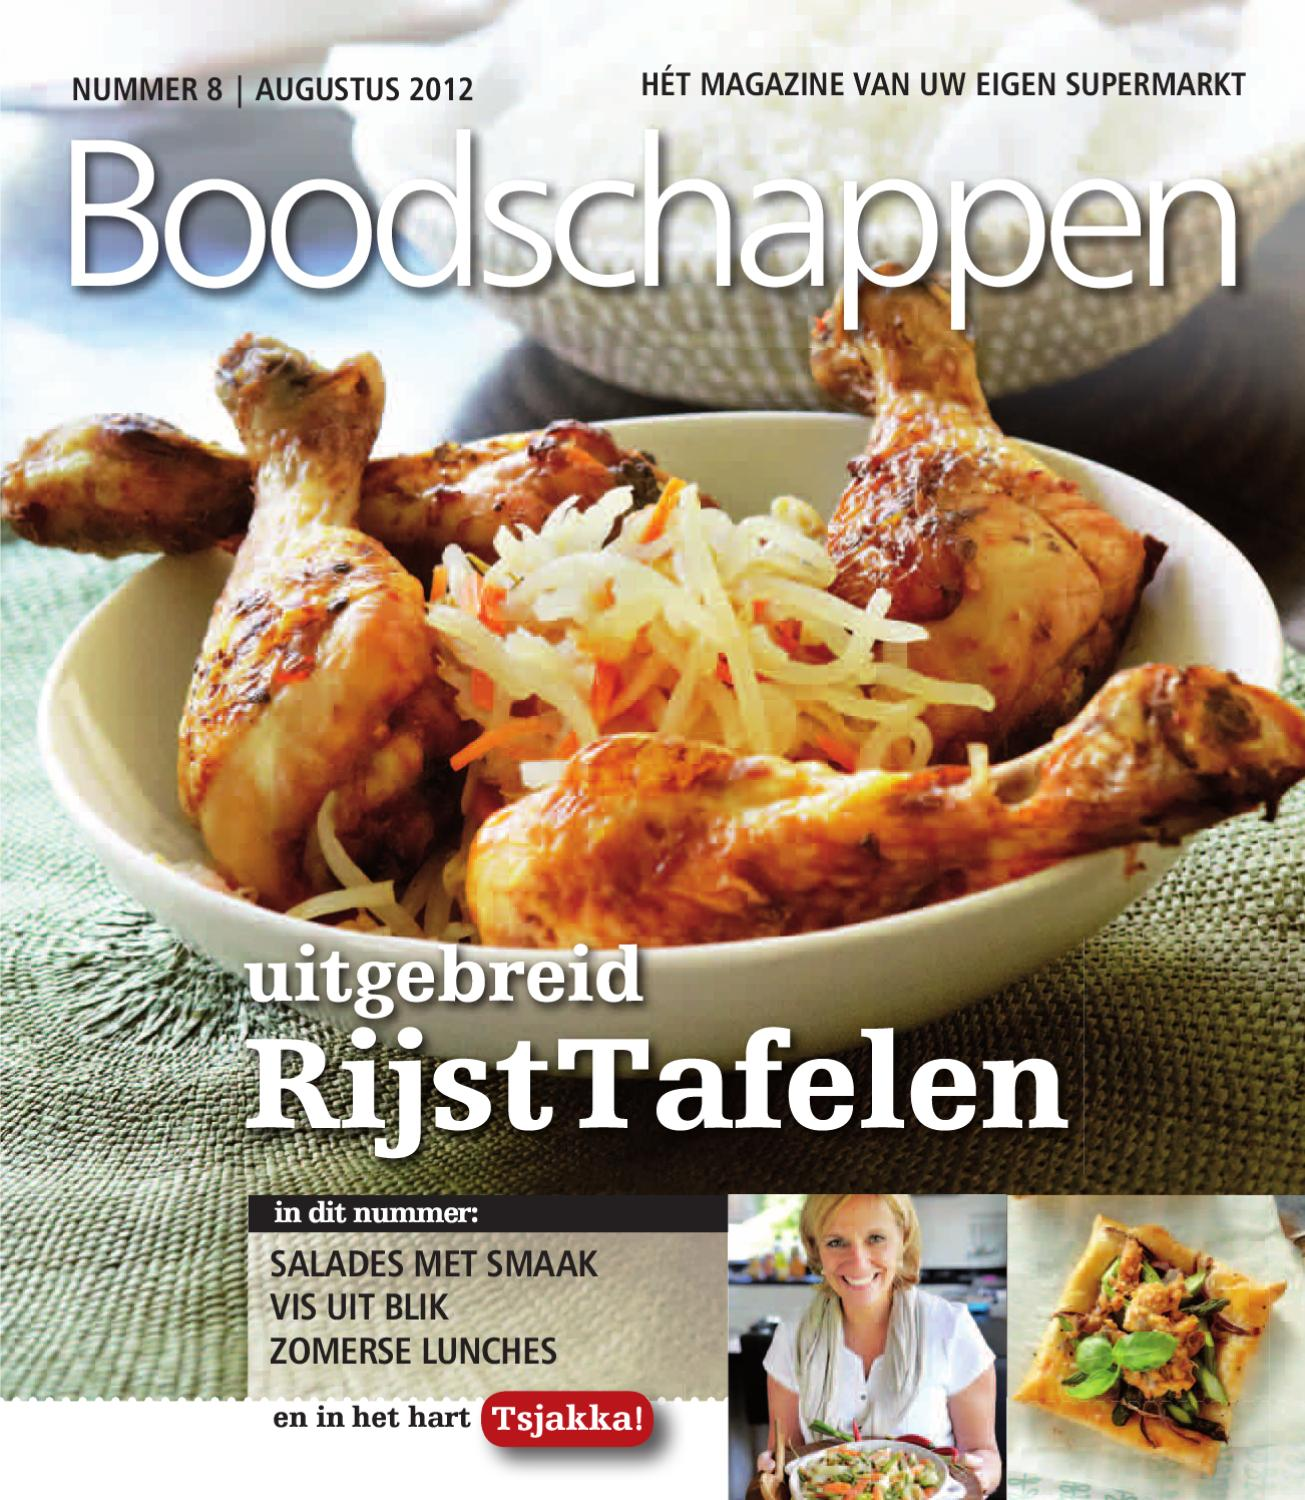 Boodschappen 12 by indicia   issuu